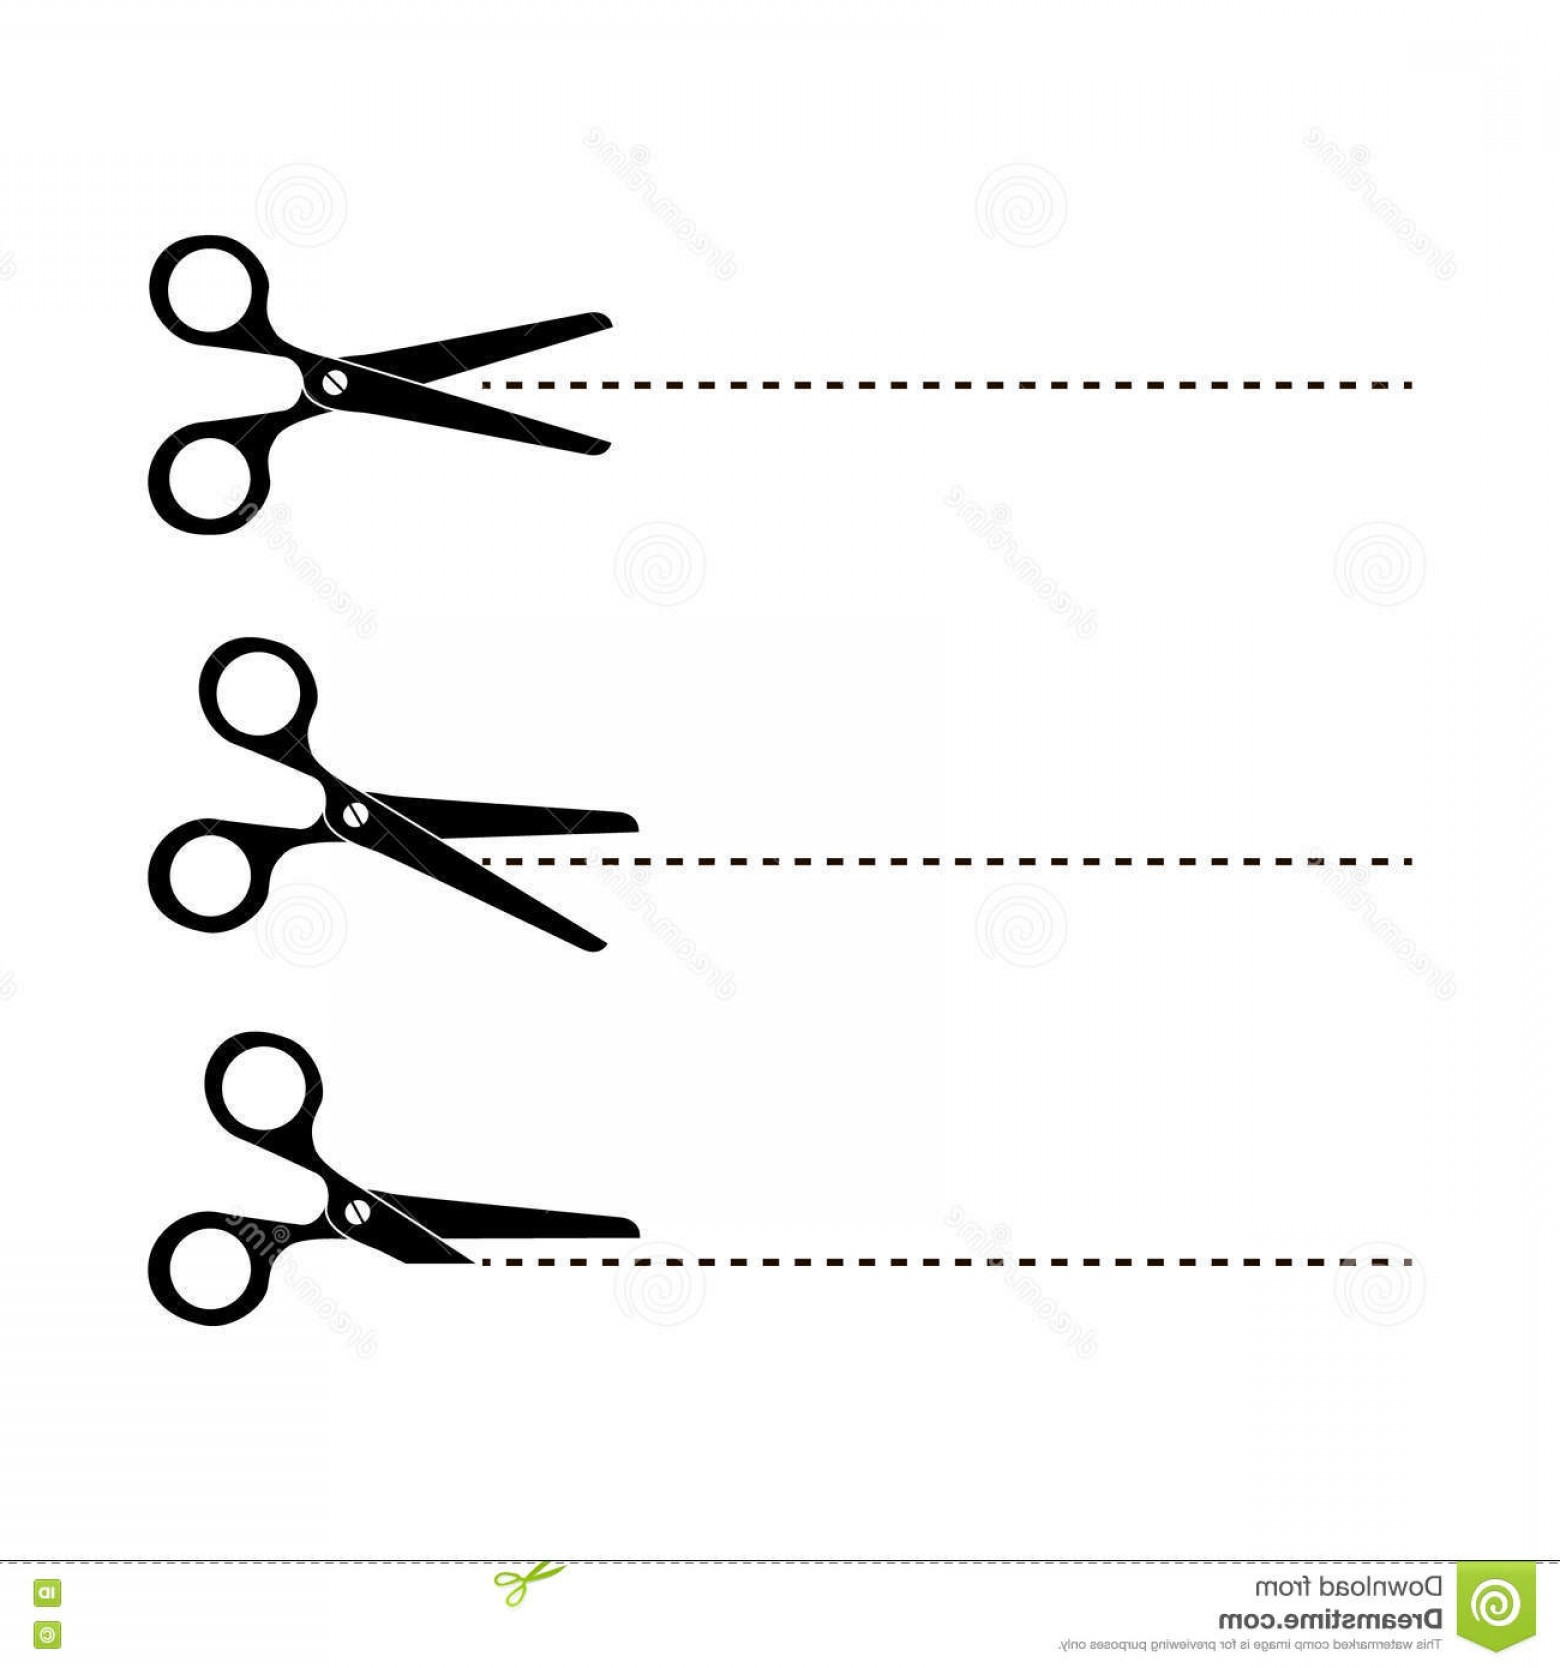 Cut Symbol Vector: Stock Illustration Cut Here Scissors Vector Illustration Symbol Dotted Line Image